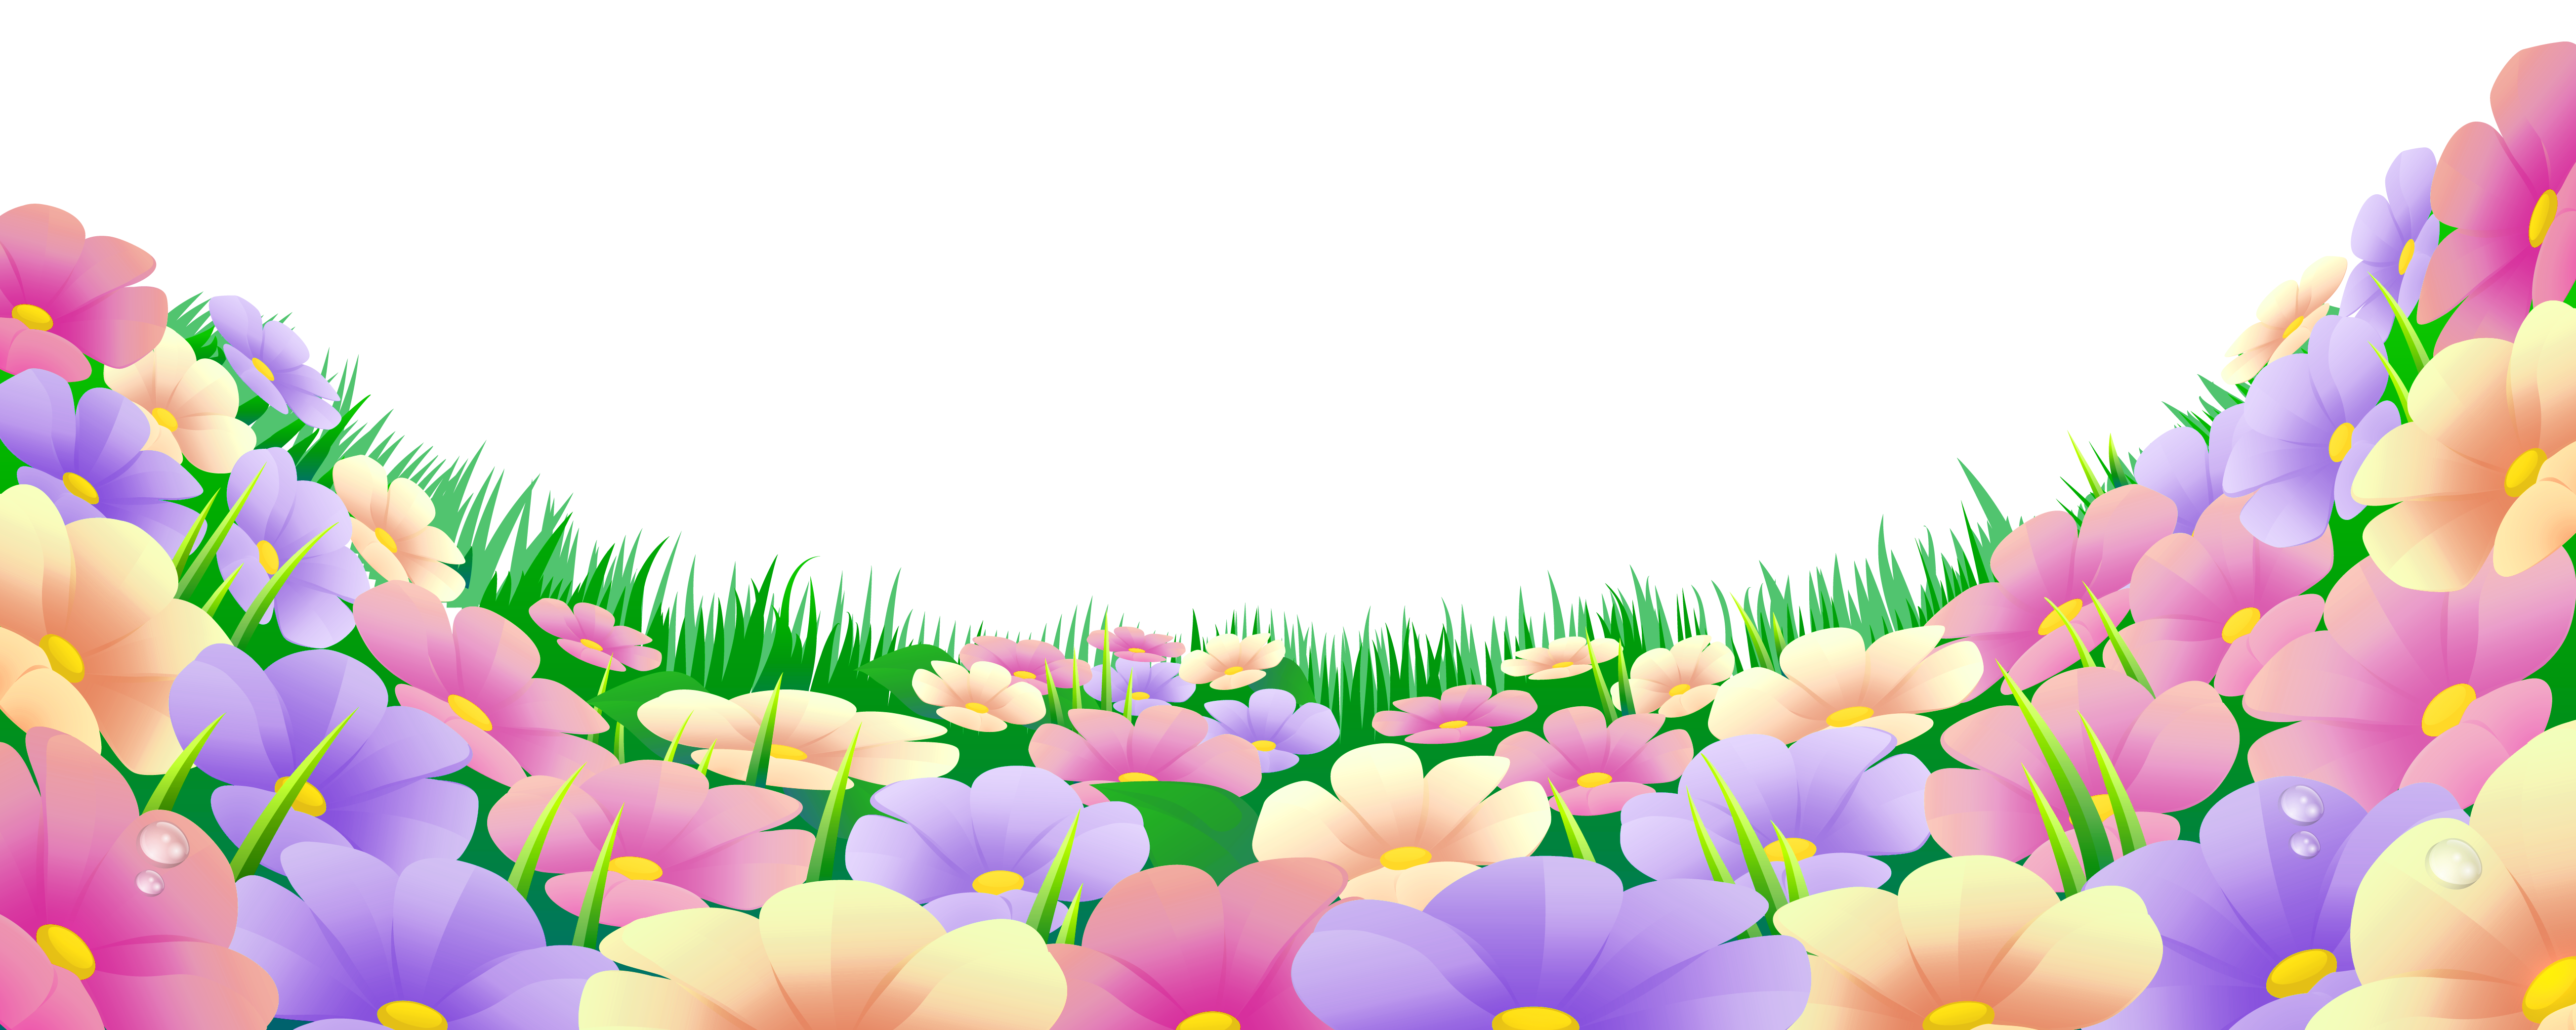 Grass with Beautiful Flowers PNG Clipart Flores